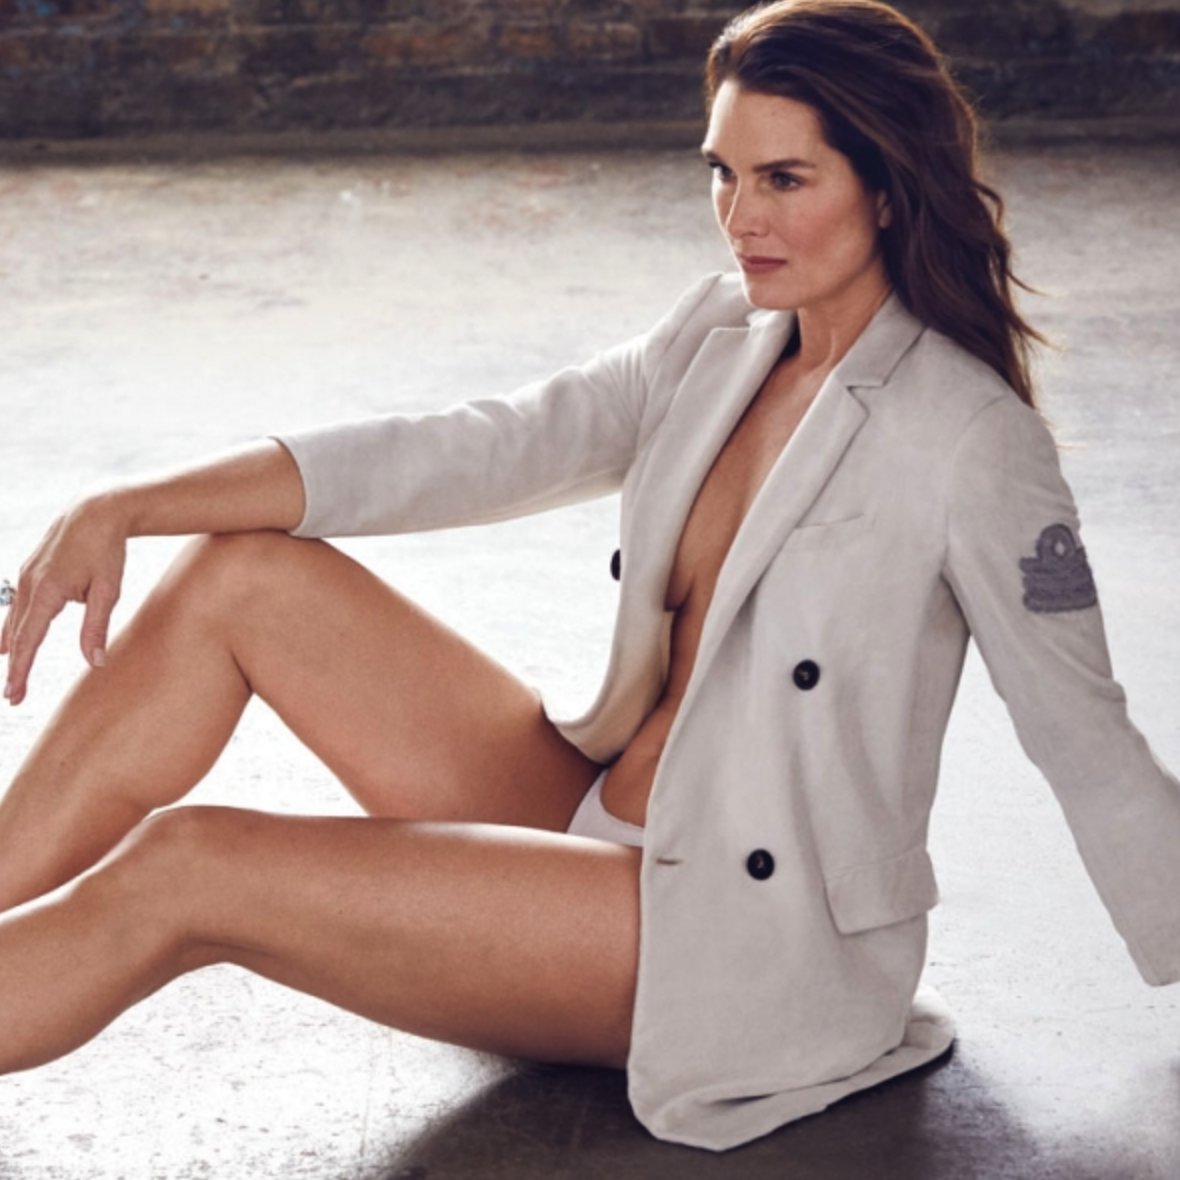 Brooke Shields Shows She's Still Got It at 52-Years-Old